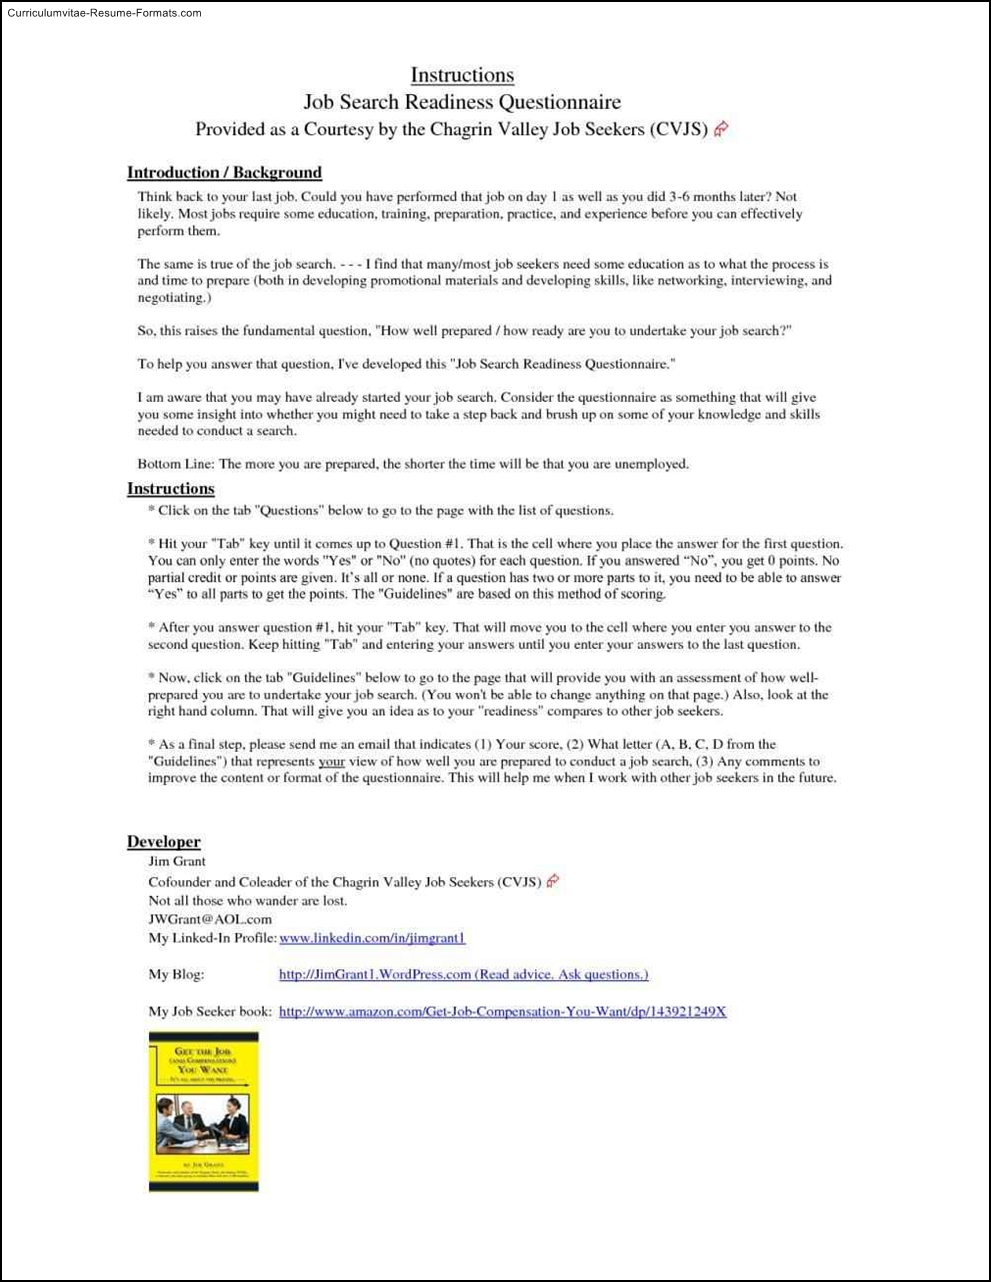 Concise-Resume-Template Curriculumvitae Summary Samples on 95 theses summary, accounting resume summary, operations manager resume summary, the battle of salamis summary, research summary, textbook chapter summary, apa format summary, product summary, example of a story summary, 6 grade summary, case summary, book summary, the art of war summary, presentation summary, example resume summary, job skills summary, template for writing a summary, professional summary, steps writing summary, part of a resume summary,